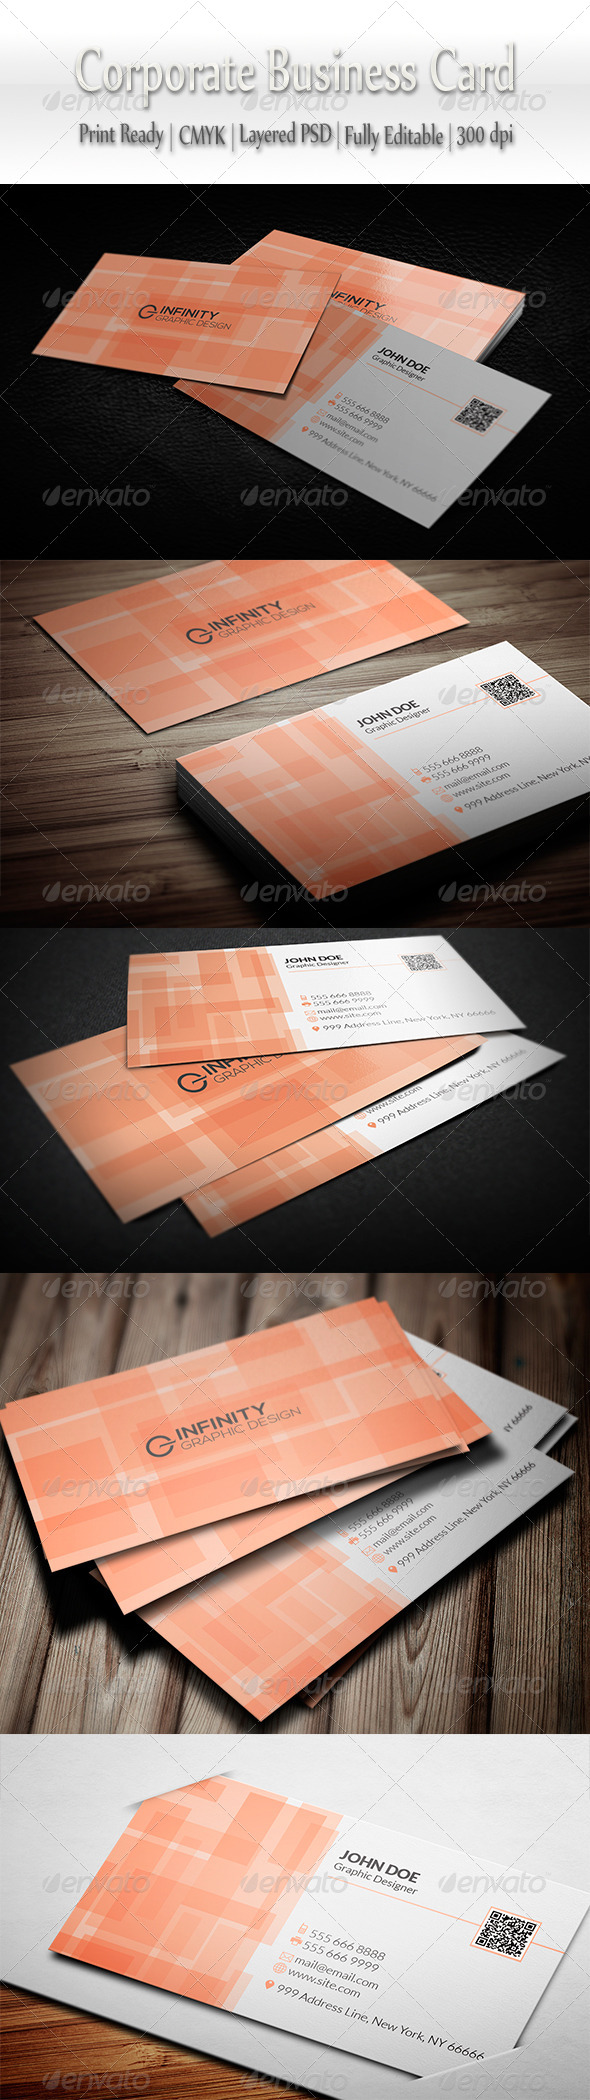 GraphicRiver Corporate Business Card 8354216